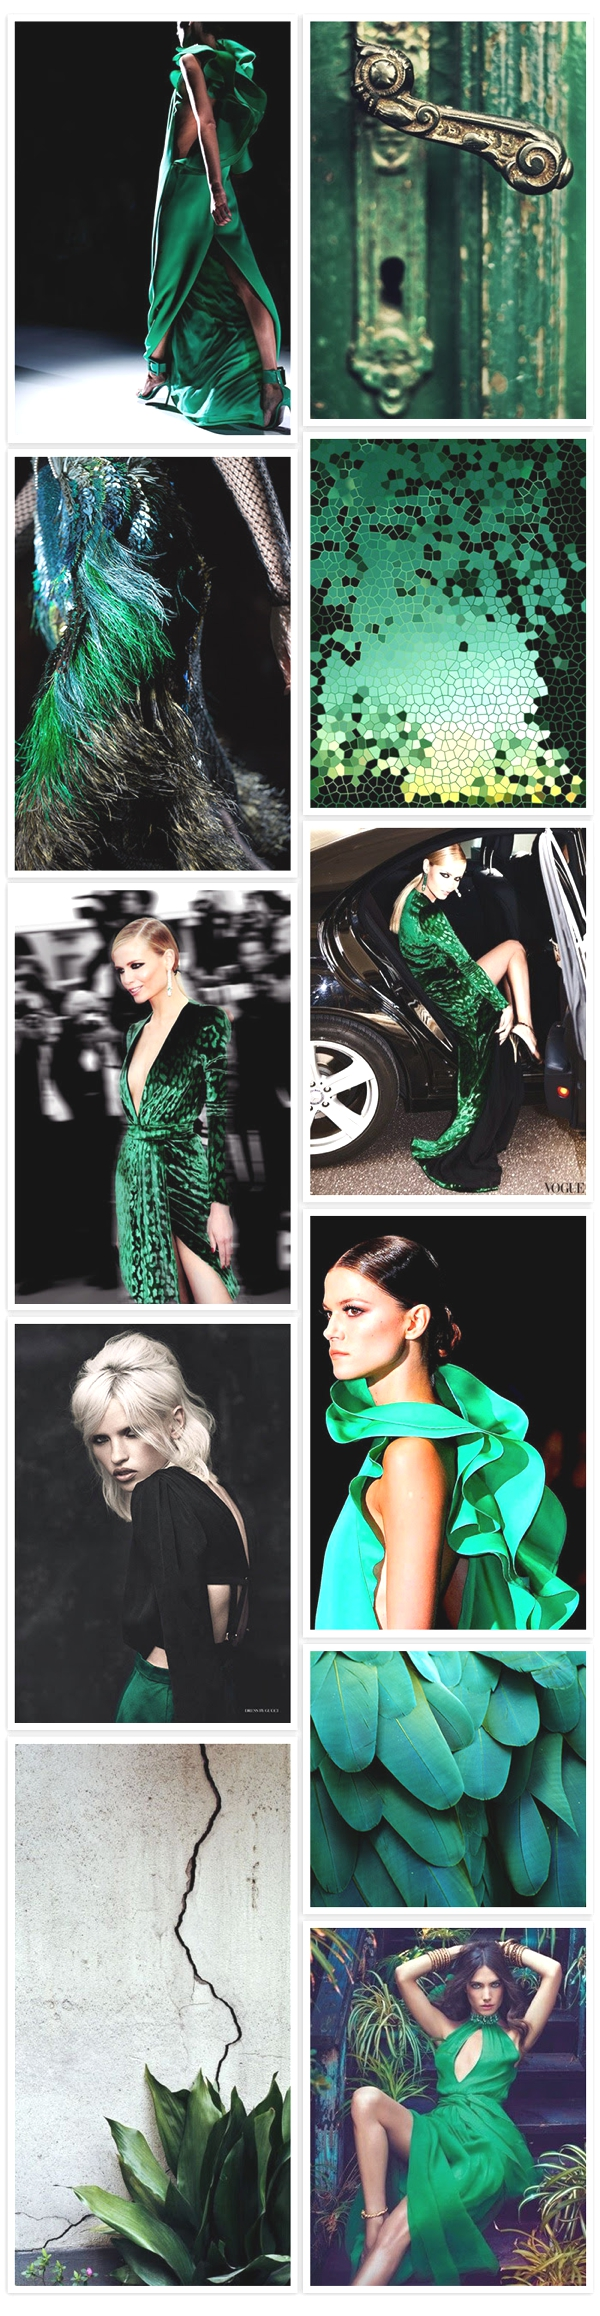 Green fashion Zone collage photos fashion